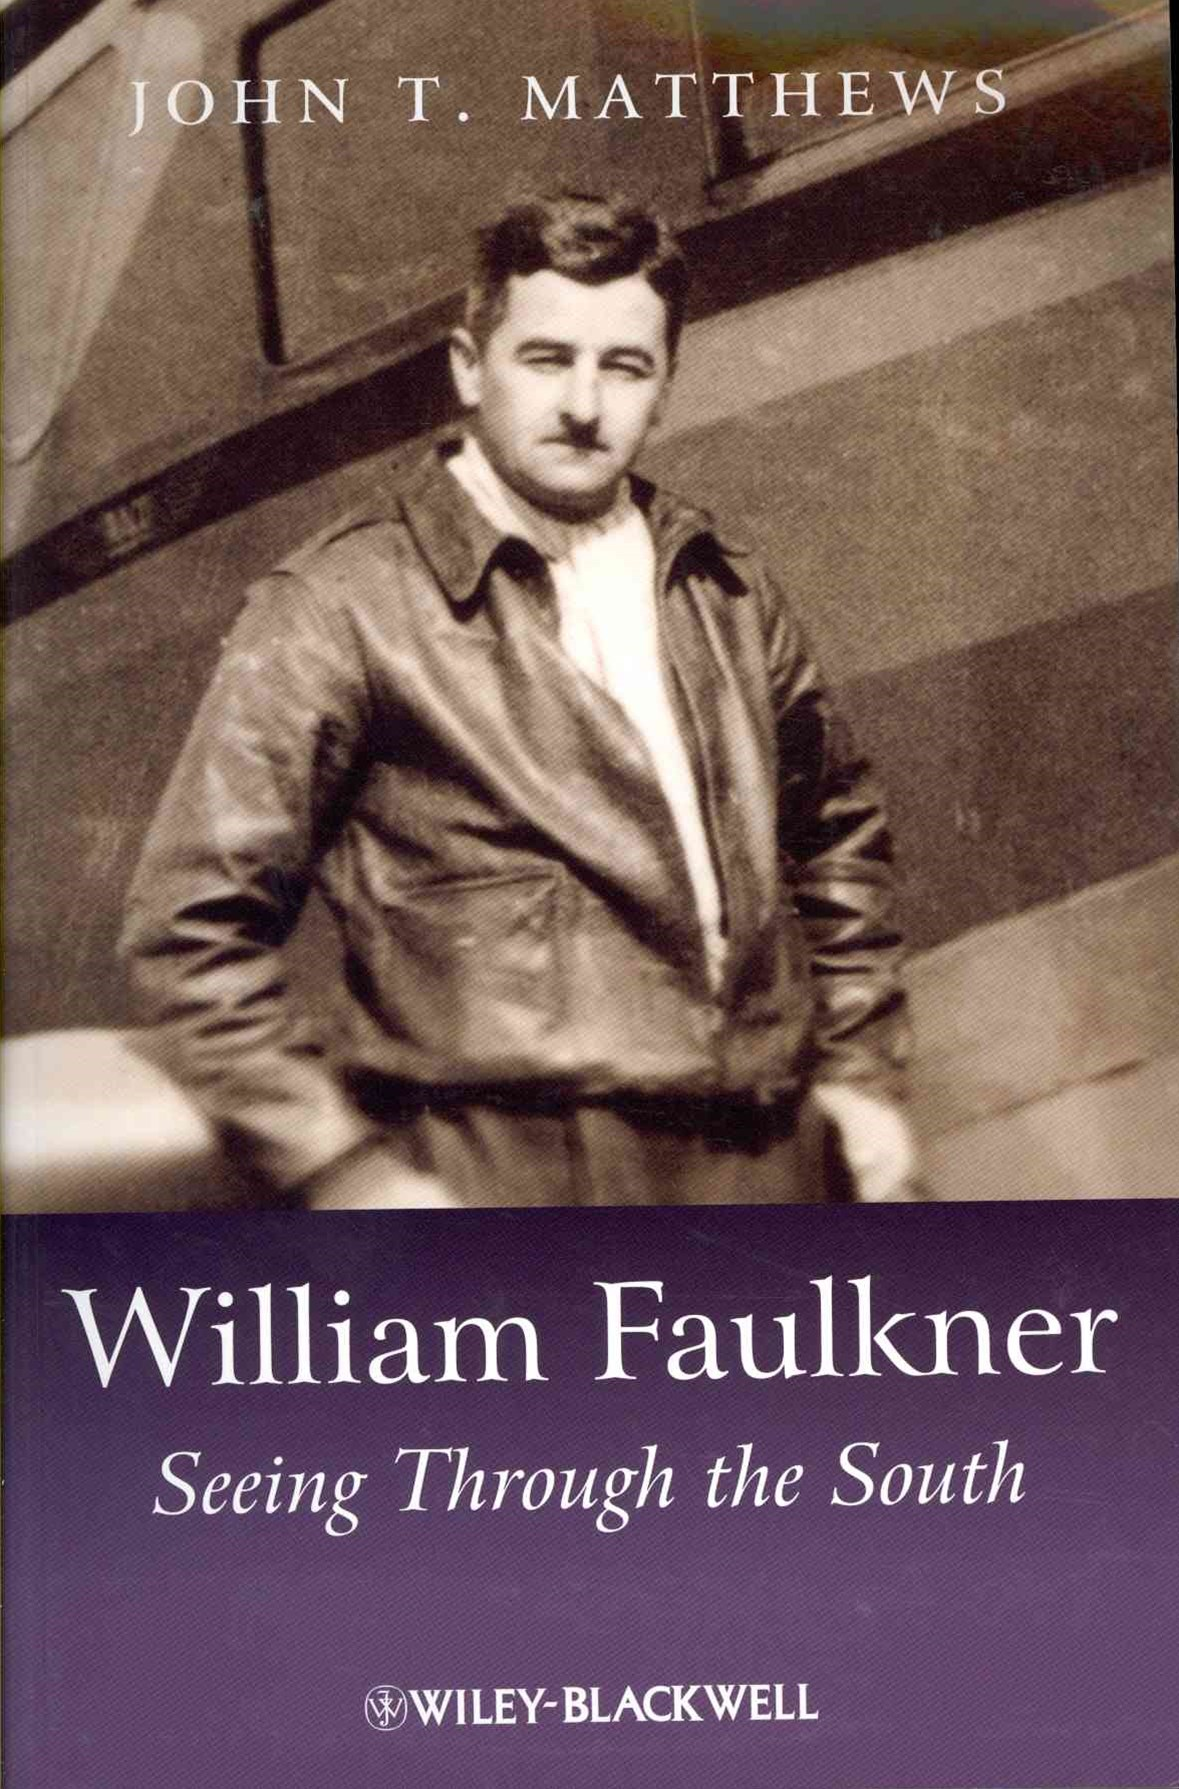 William Faulkner - Seeing Through the South